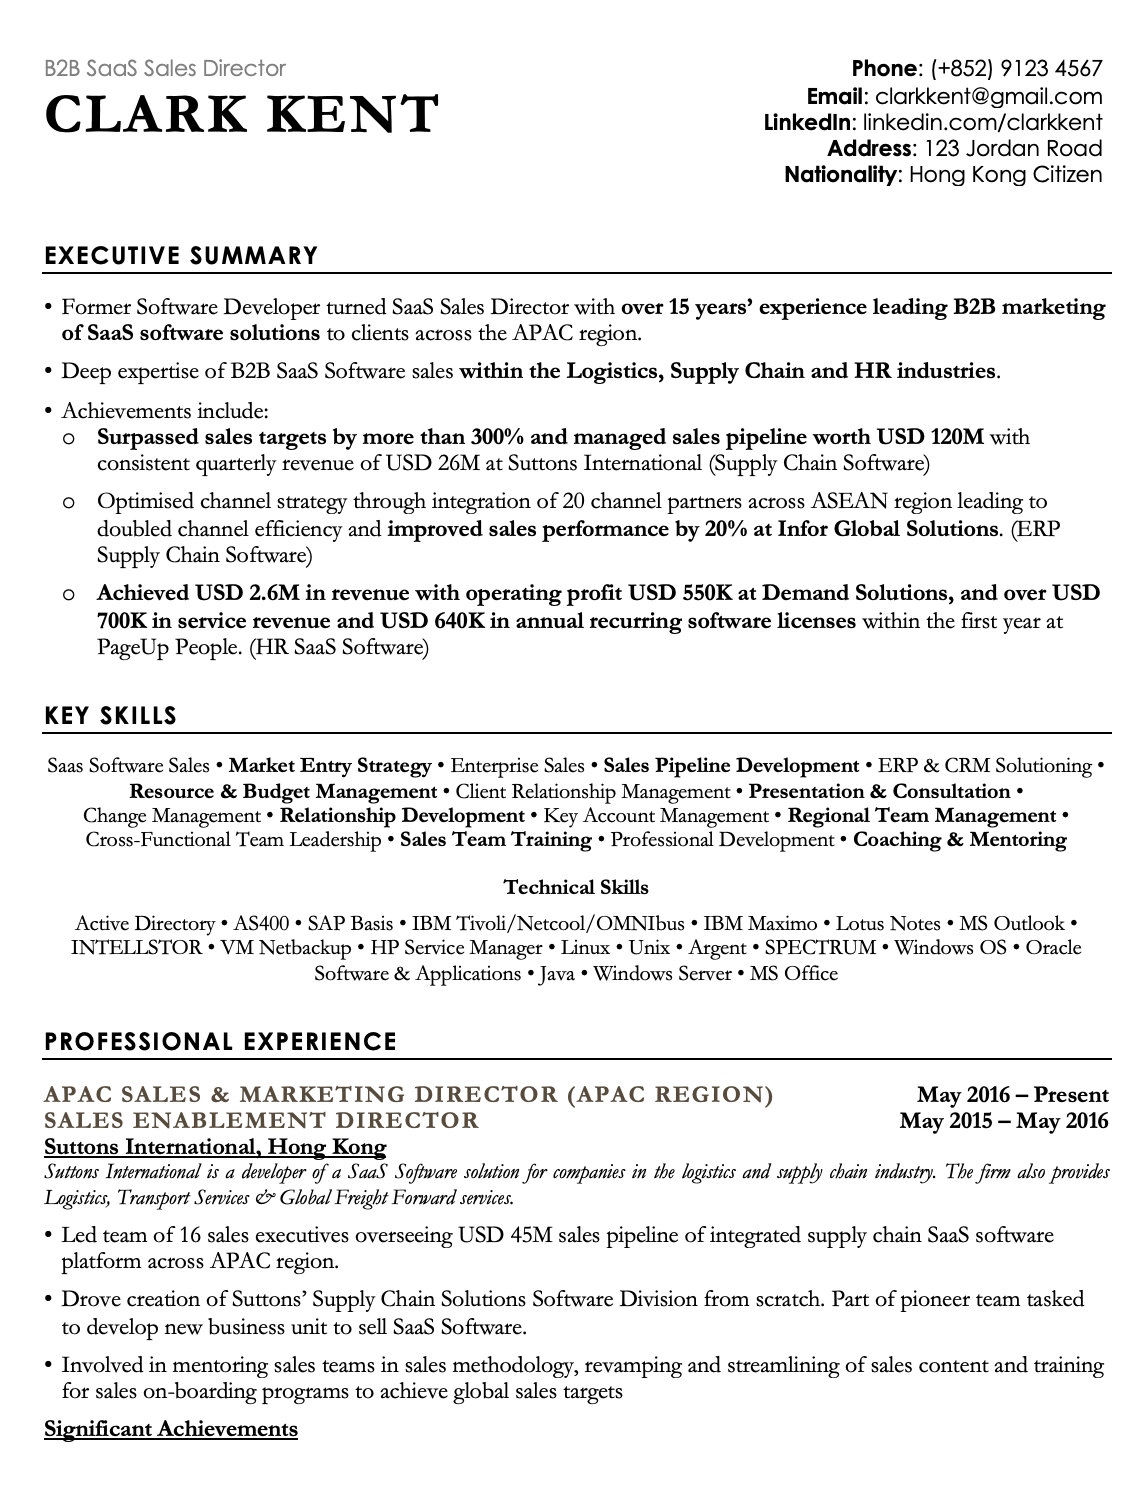 Professional Black CV Template Resume Template Hong Kong